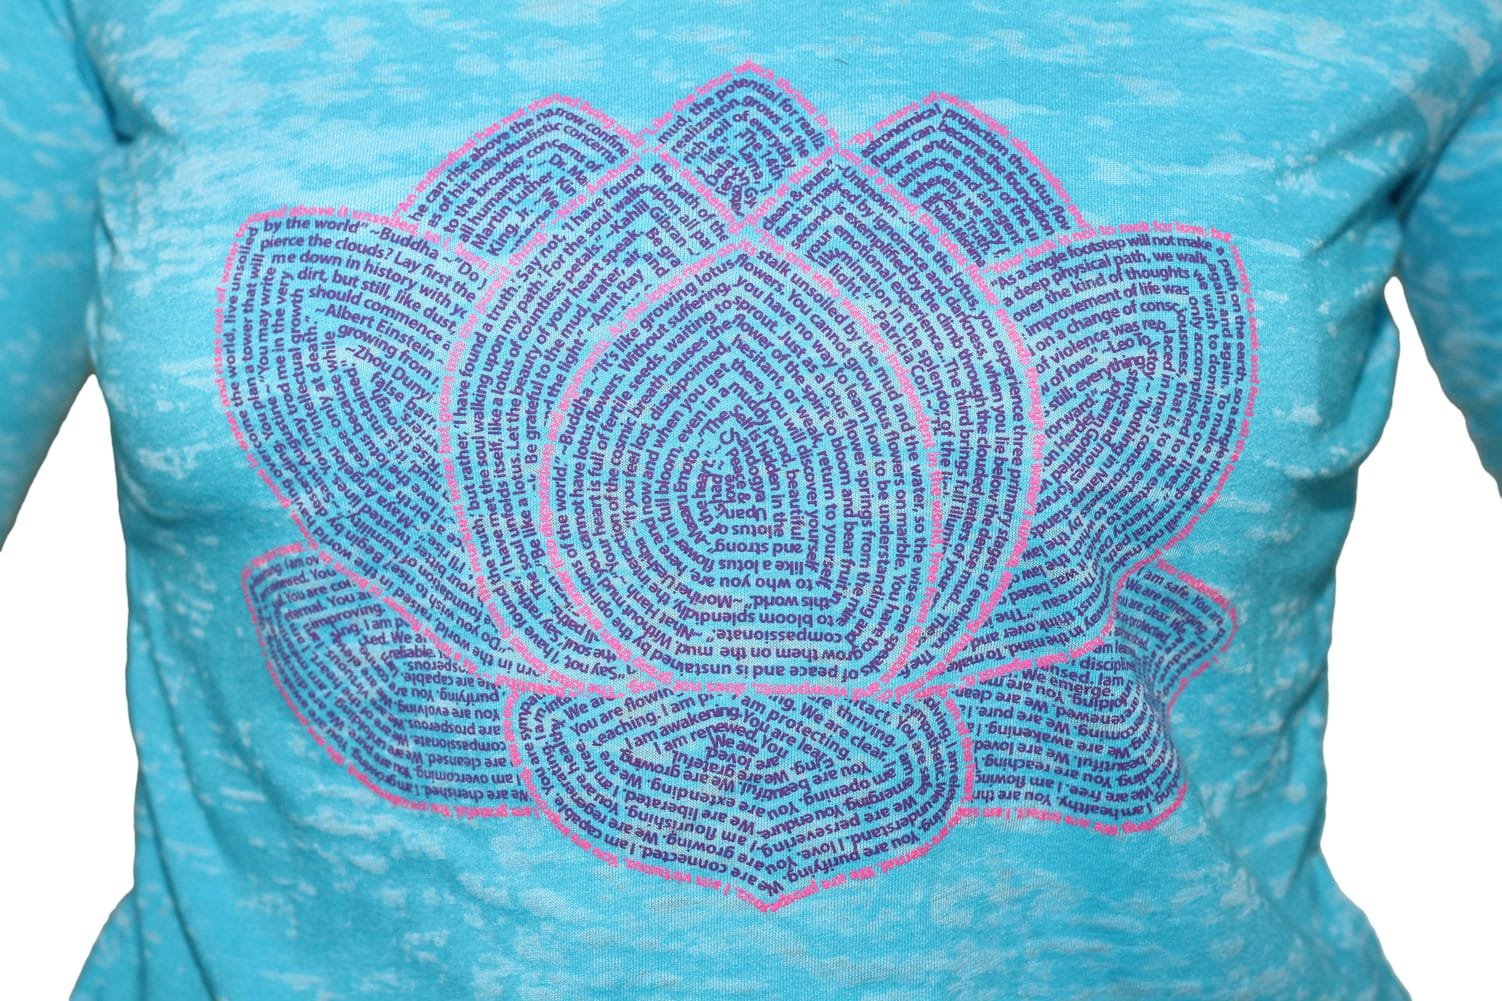 Think Positive Apparel's Lotus Flower Design Made of quotations and affirmations about the meaning of the lotus flower